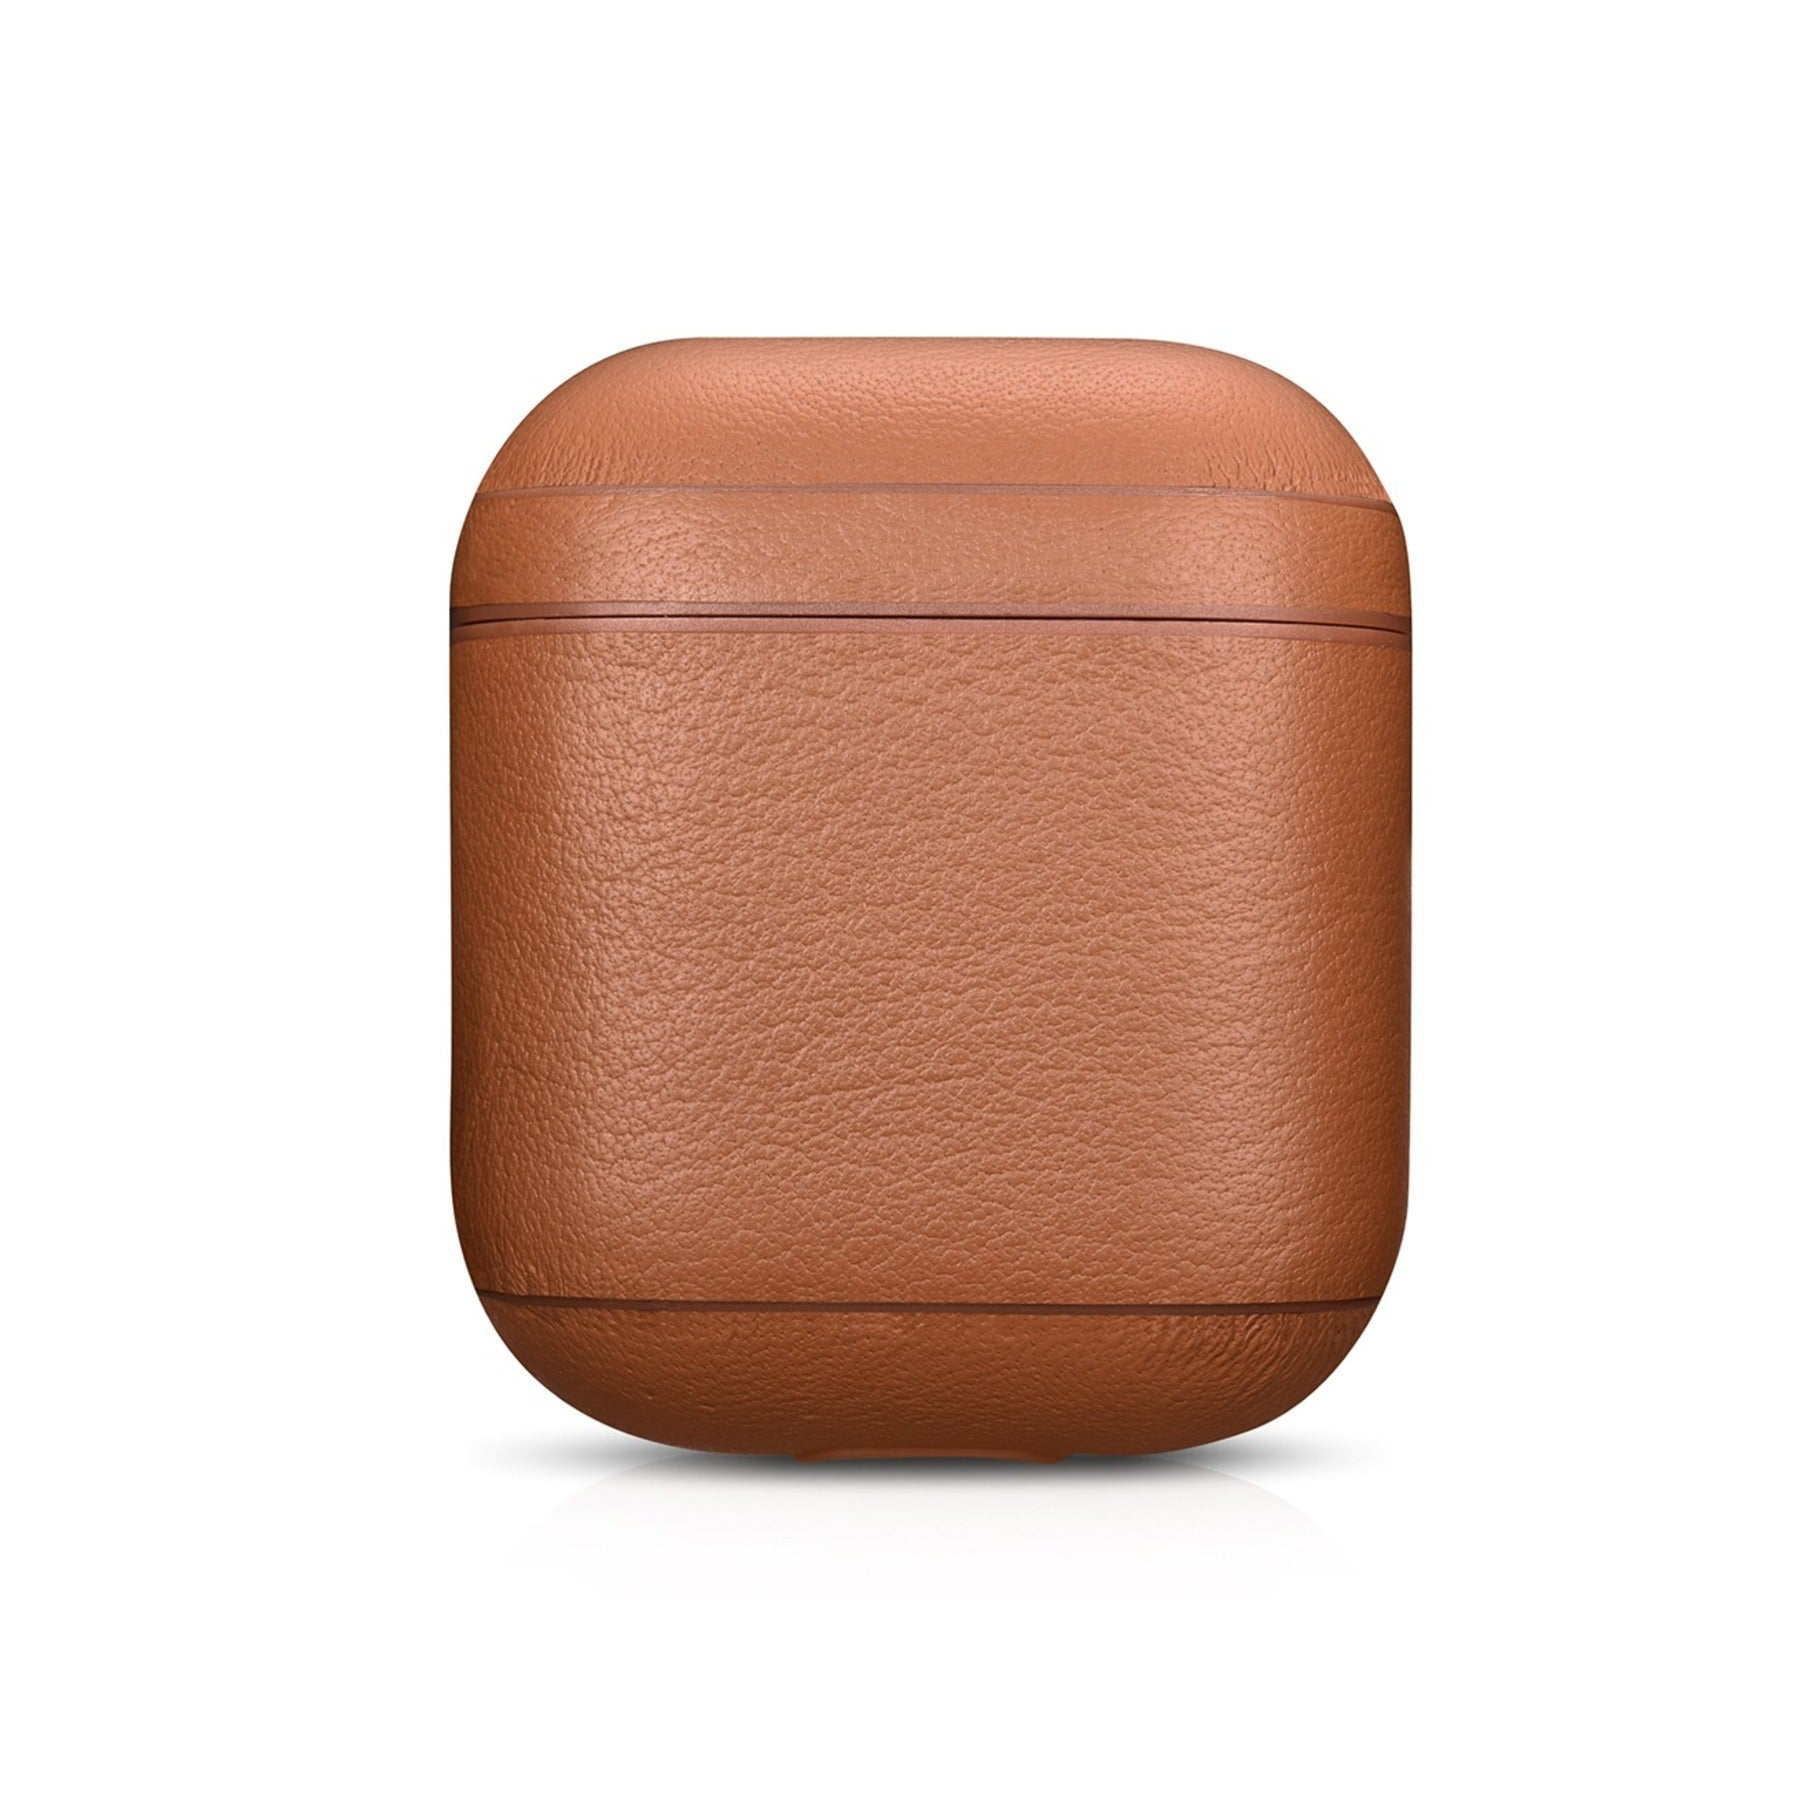 Napa Tan Premium Leather AirPods 1 & 2 Case